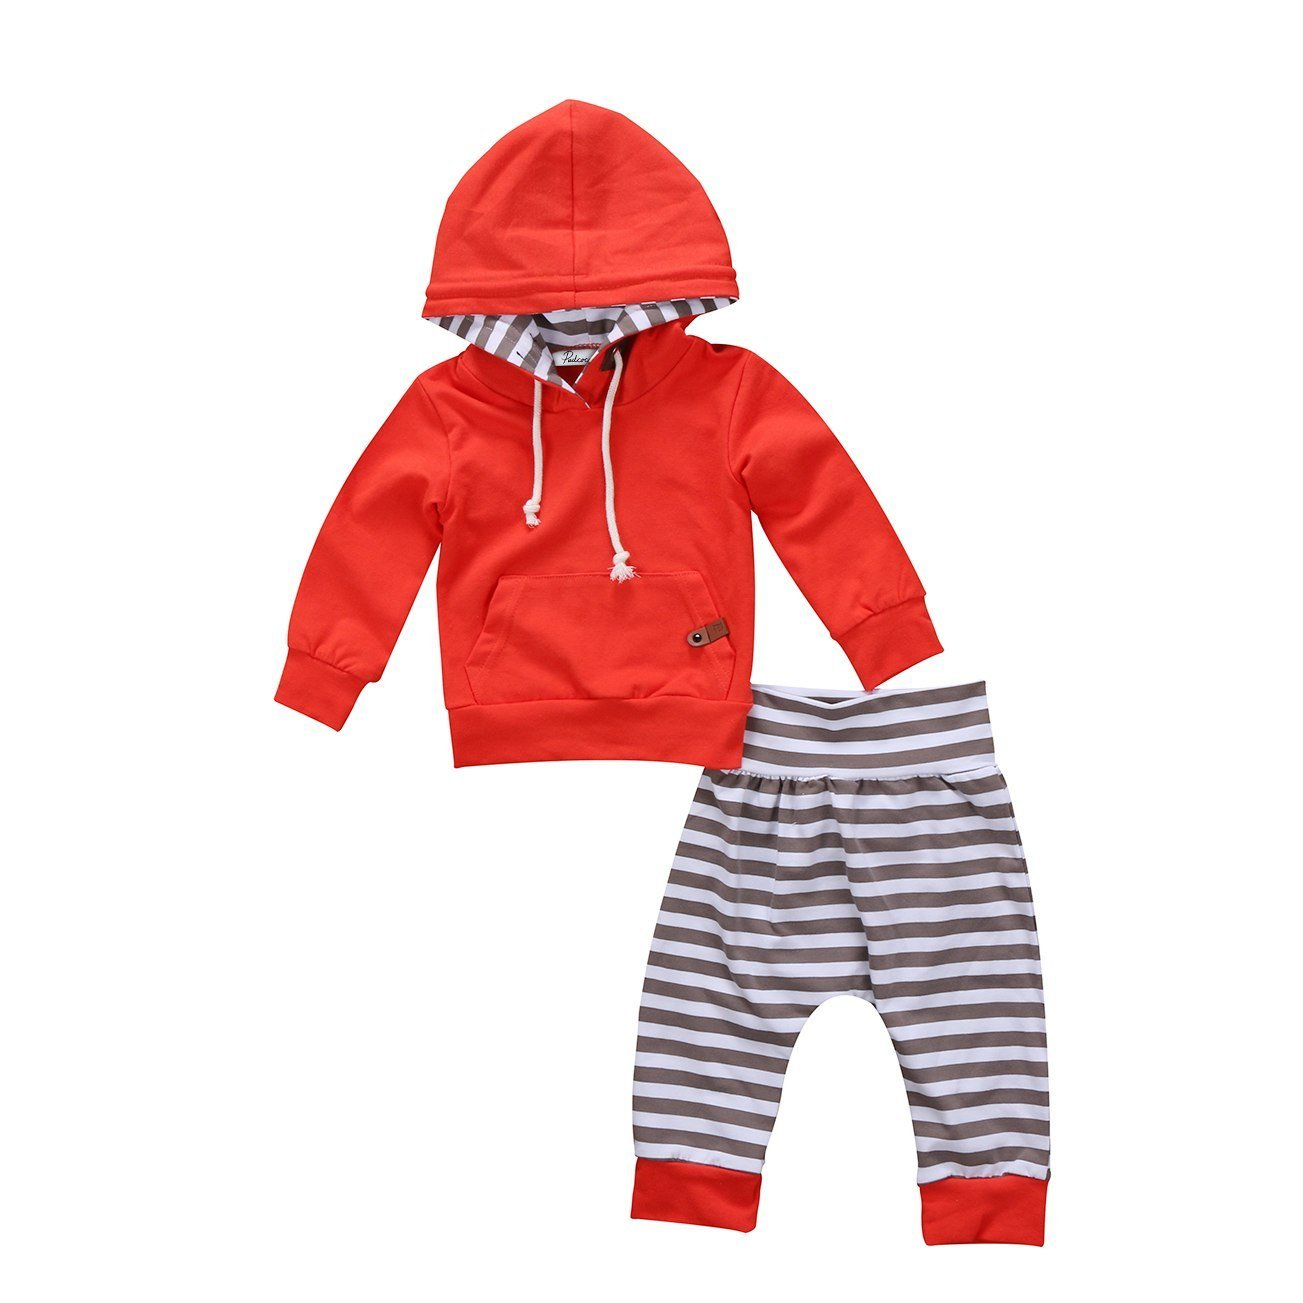 2pcs Autumn Winter Newborn Kids Baby Boys Clothes Set Tops Hoodie T-shirt+Striped Long Pants Cotton Outfit Clothes Set - Here Comes A Baby